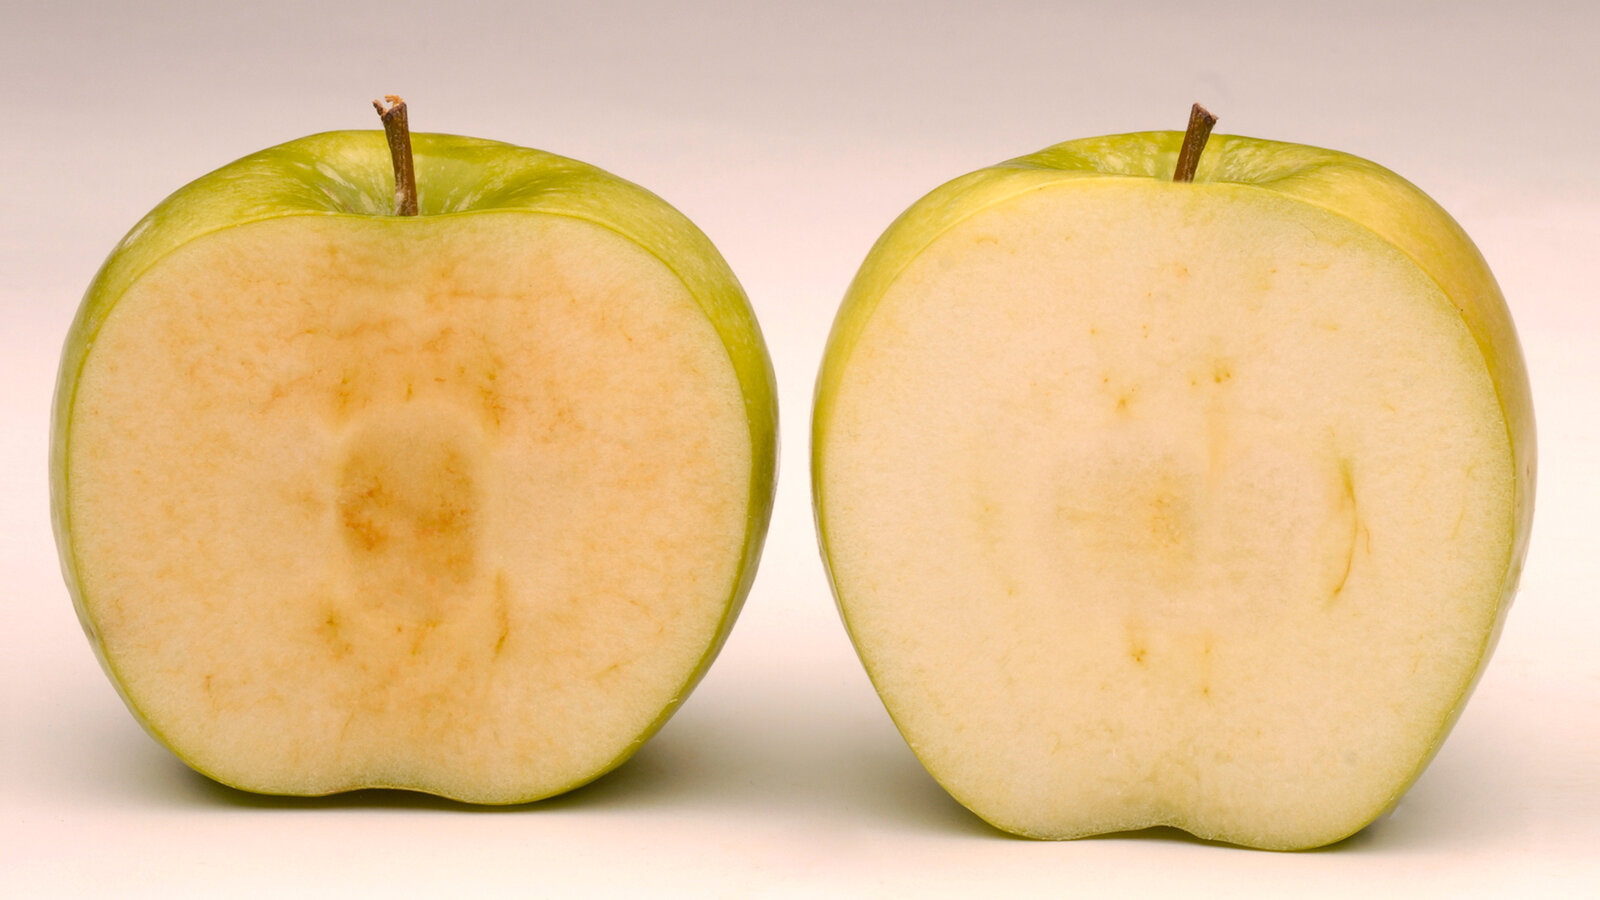 Arctic Granny (right), a GMO variety created by Okanagan Specialty Fruits, got the gren light from federal regulators Friday. The apple doesn't turn brown like a conventional Granny Smith apple (left).